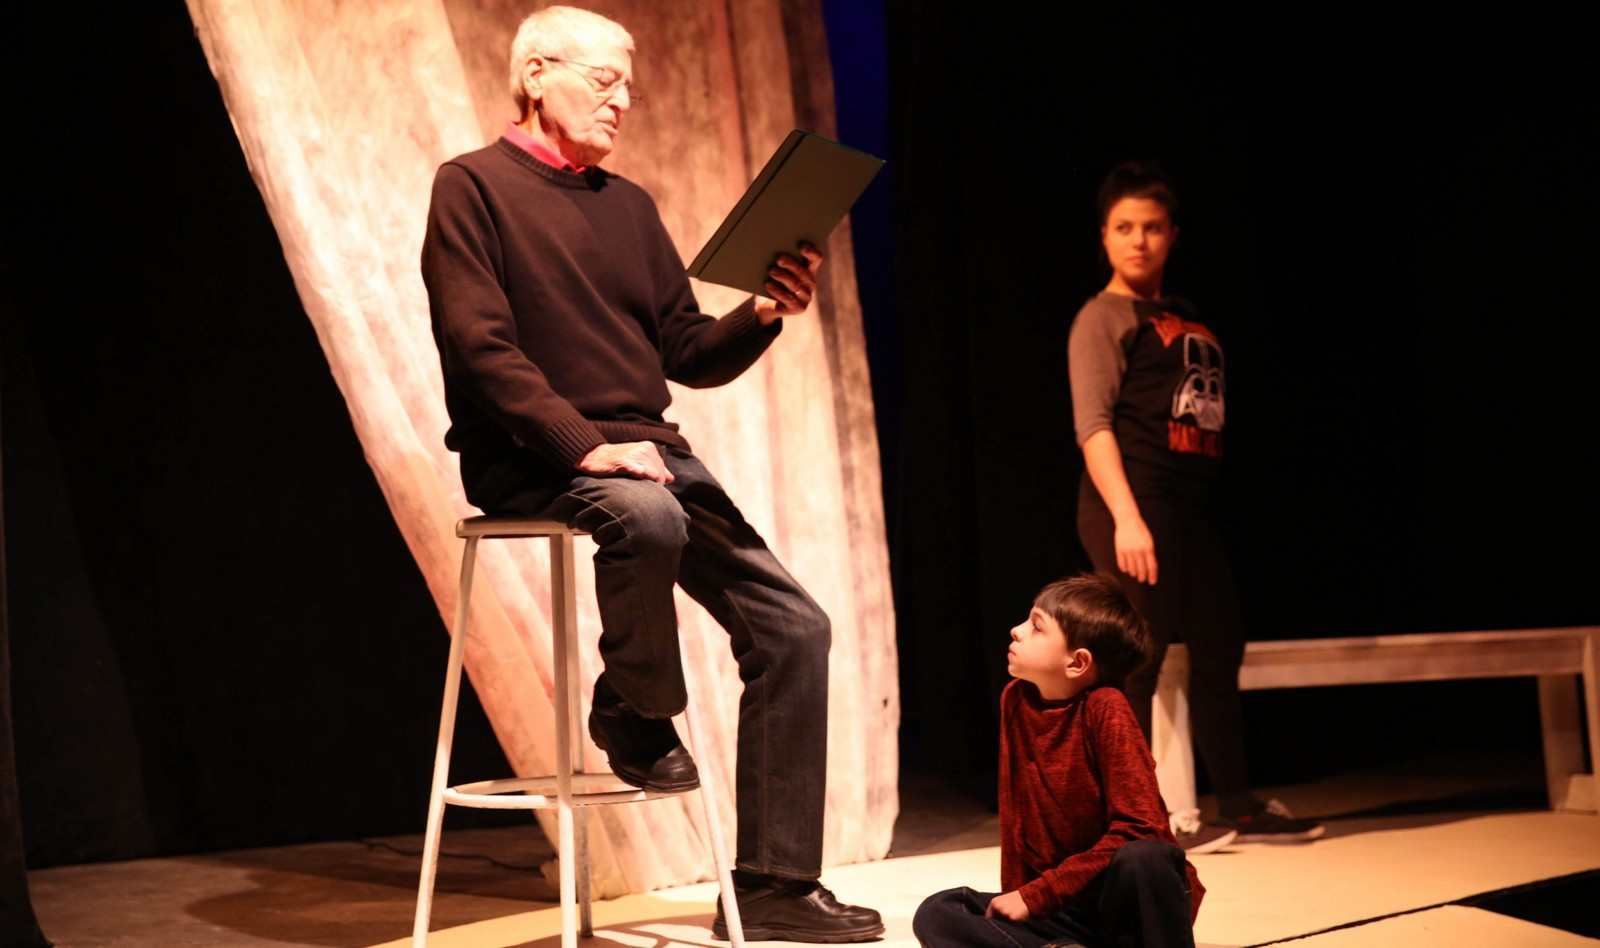 """Joe Natale, Jamie Docktor and Noah Docktor star in the New Phoenix Theatre's production of """"Love's Passionate Fire."""""""